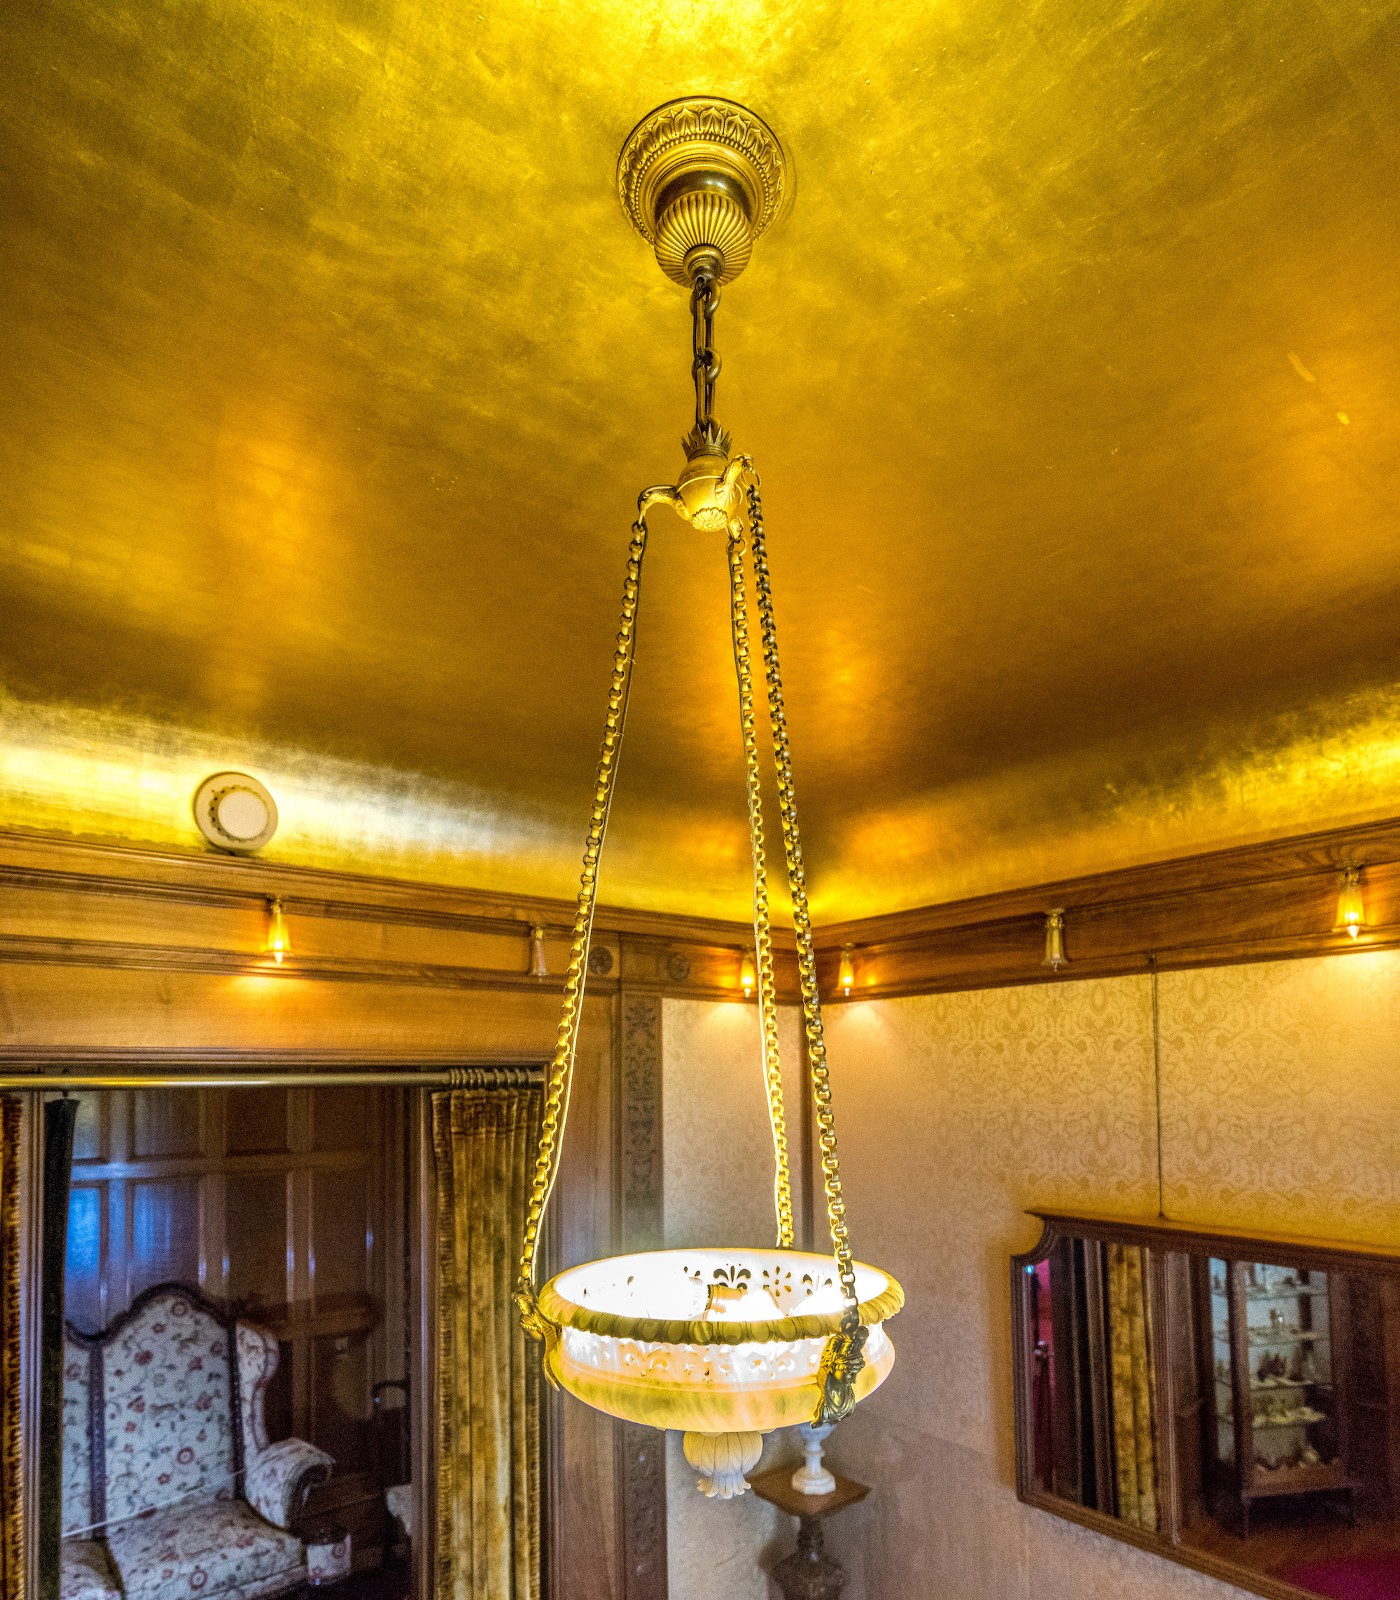 The reception room's golden ceiling shines and is illuminated by the one of a kind hanging light fixture.